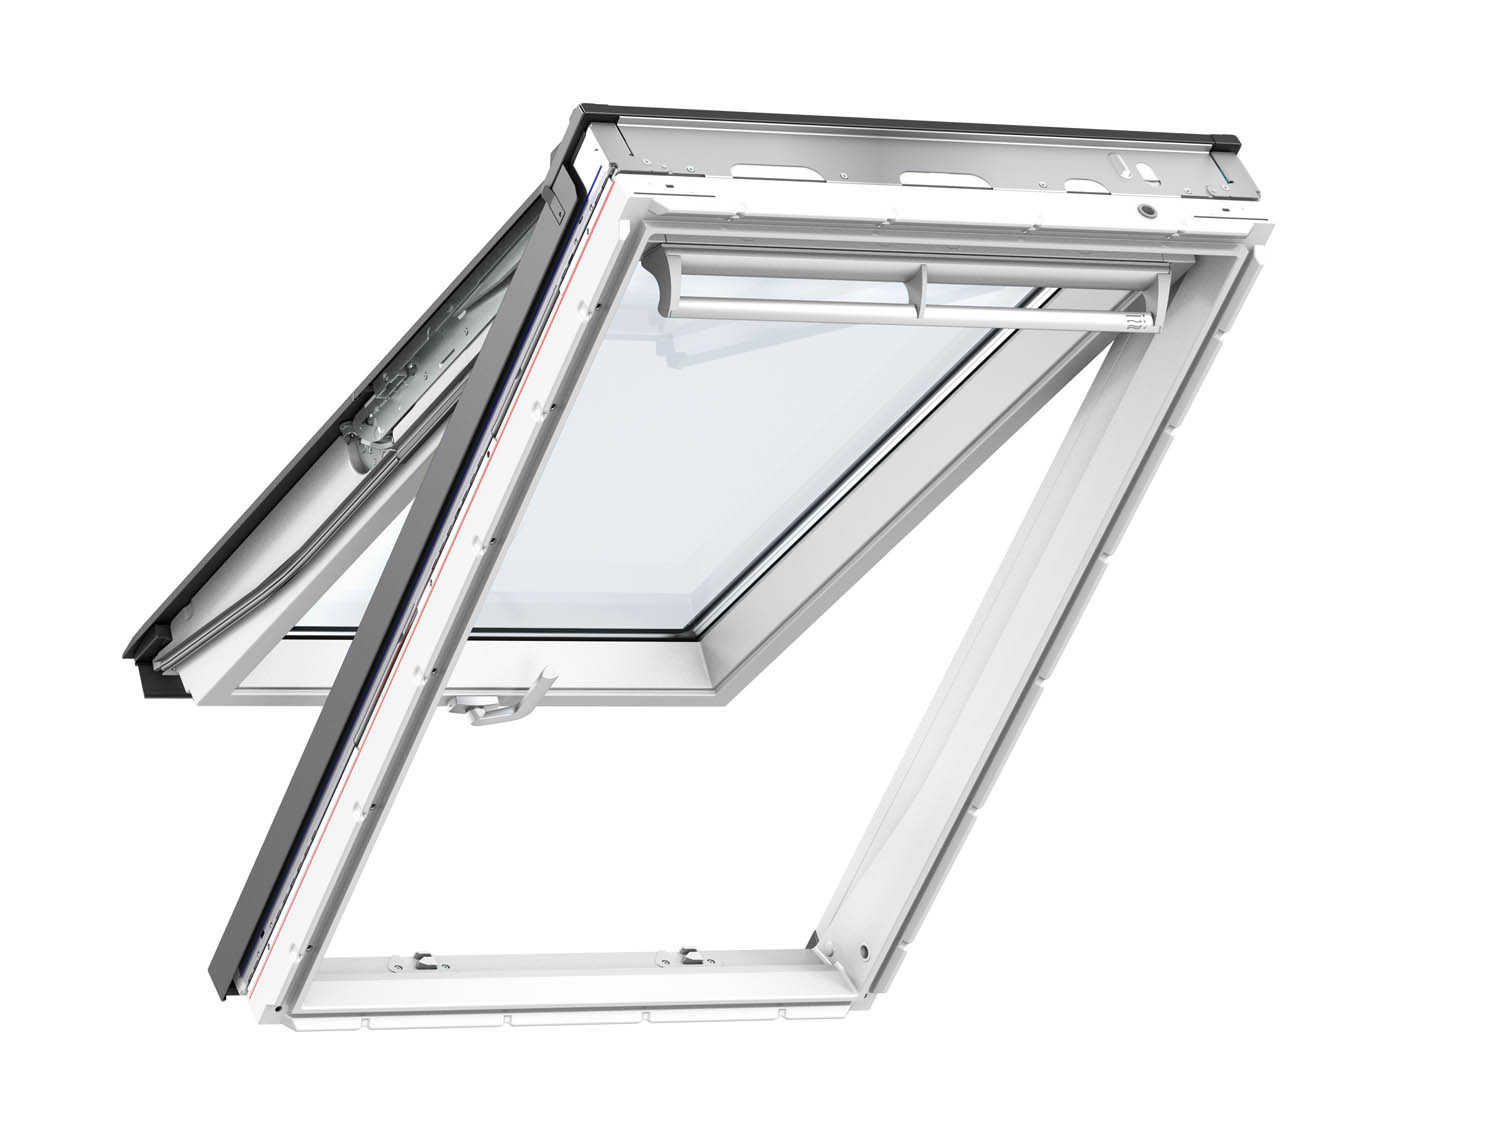 Velux 550mm x 980mm Top-Hung White Roof Window GPL2070 CK04